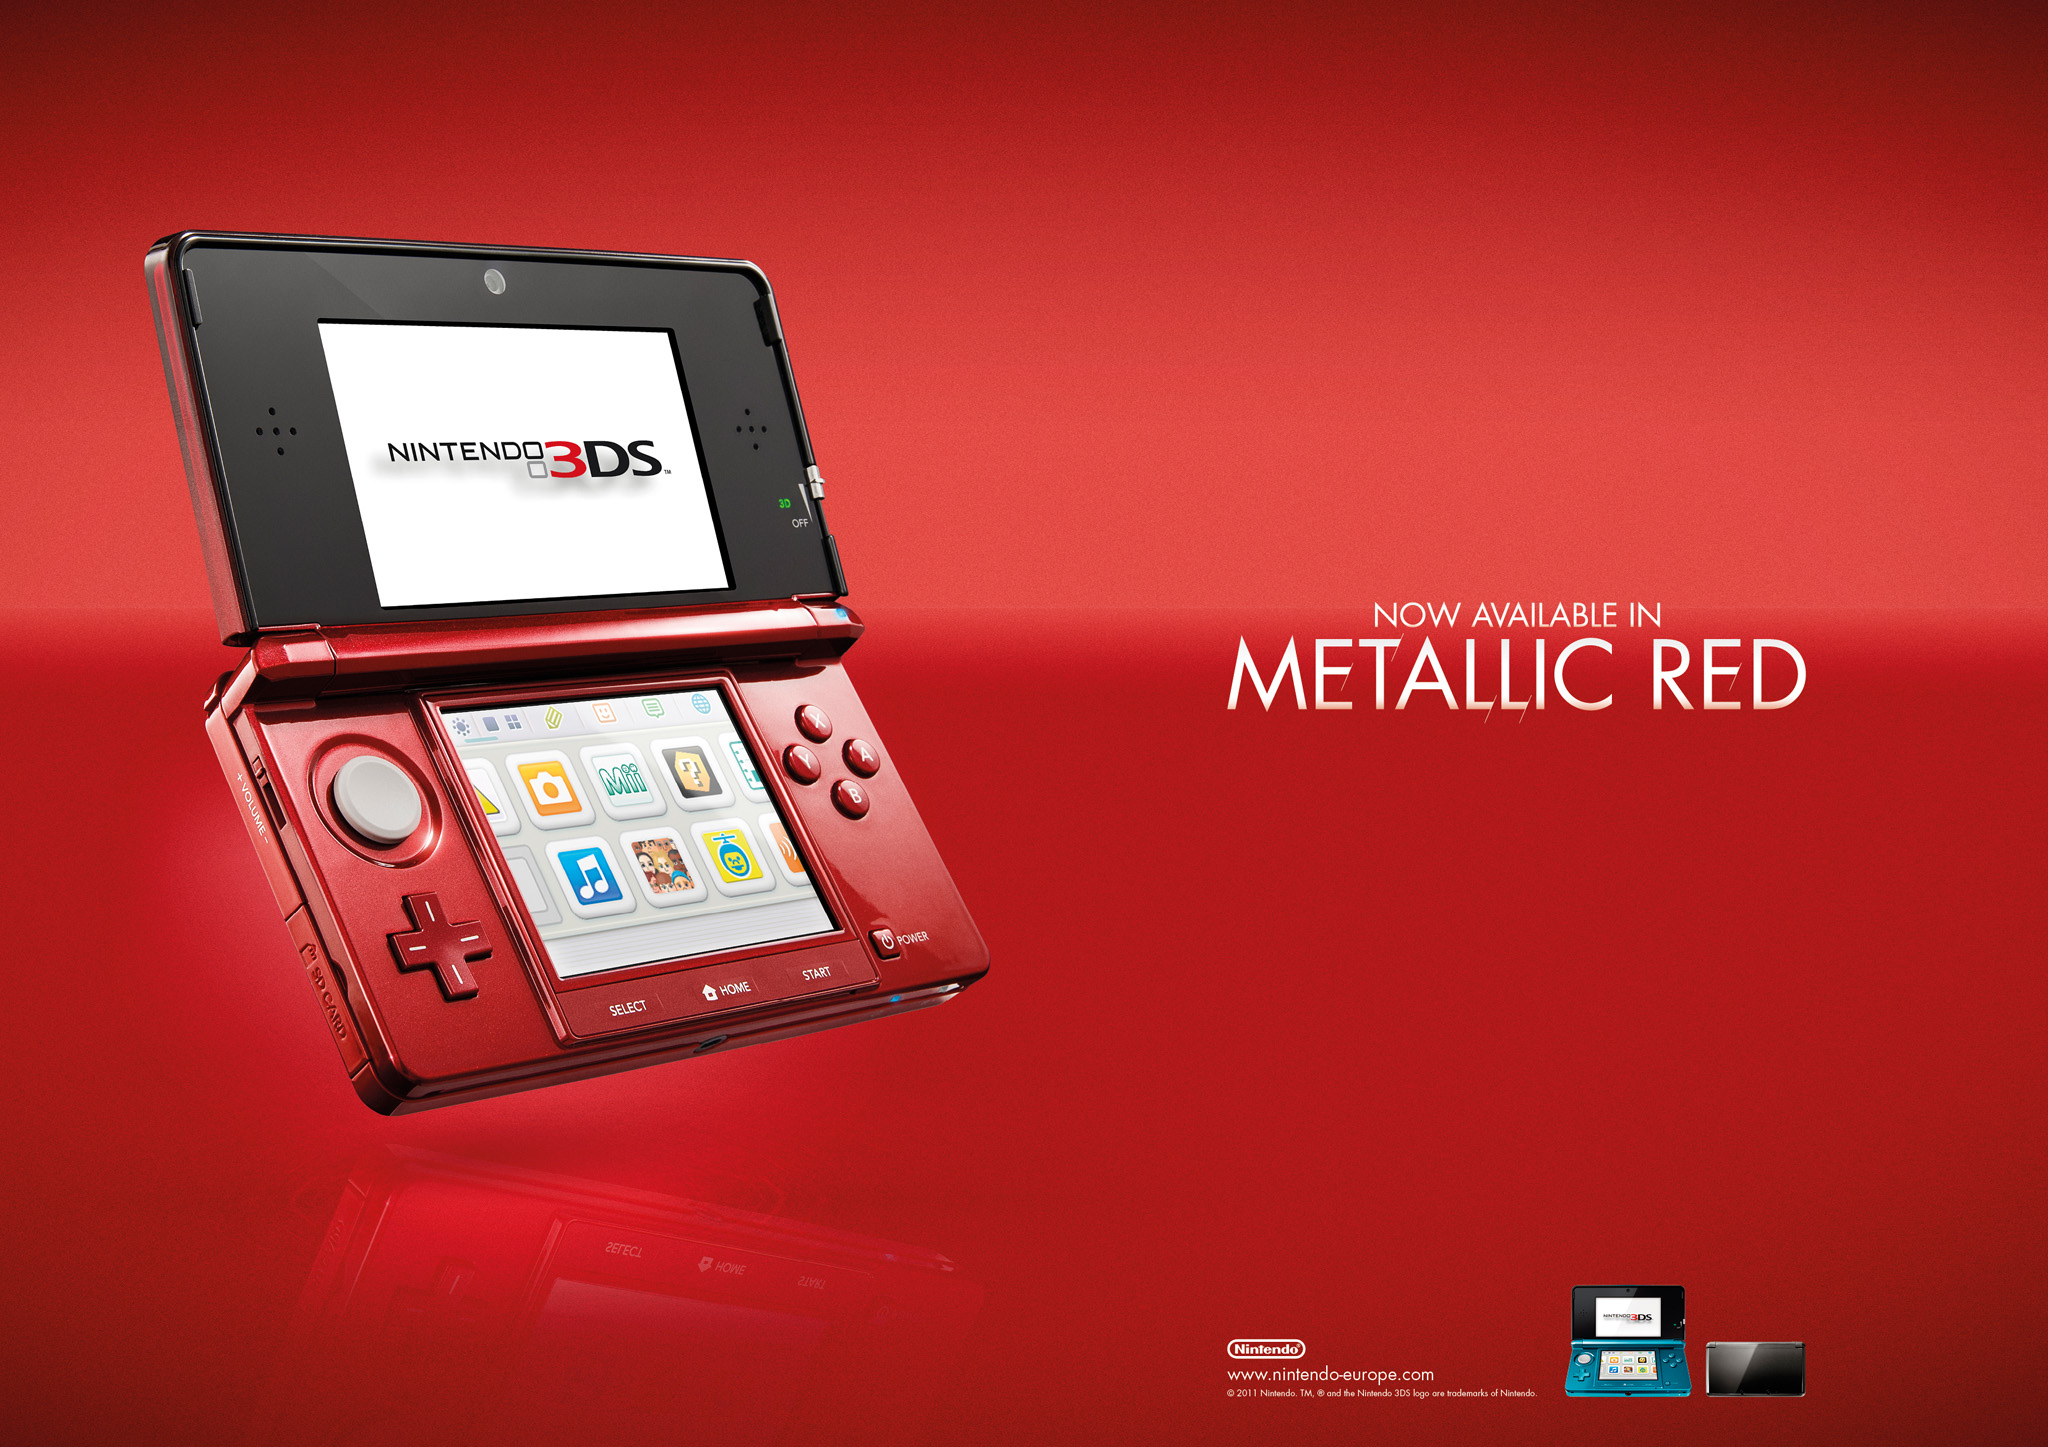 3ds flame red poster simple ad v2.jpg